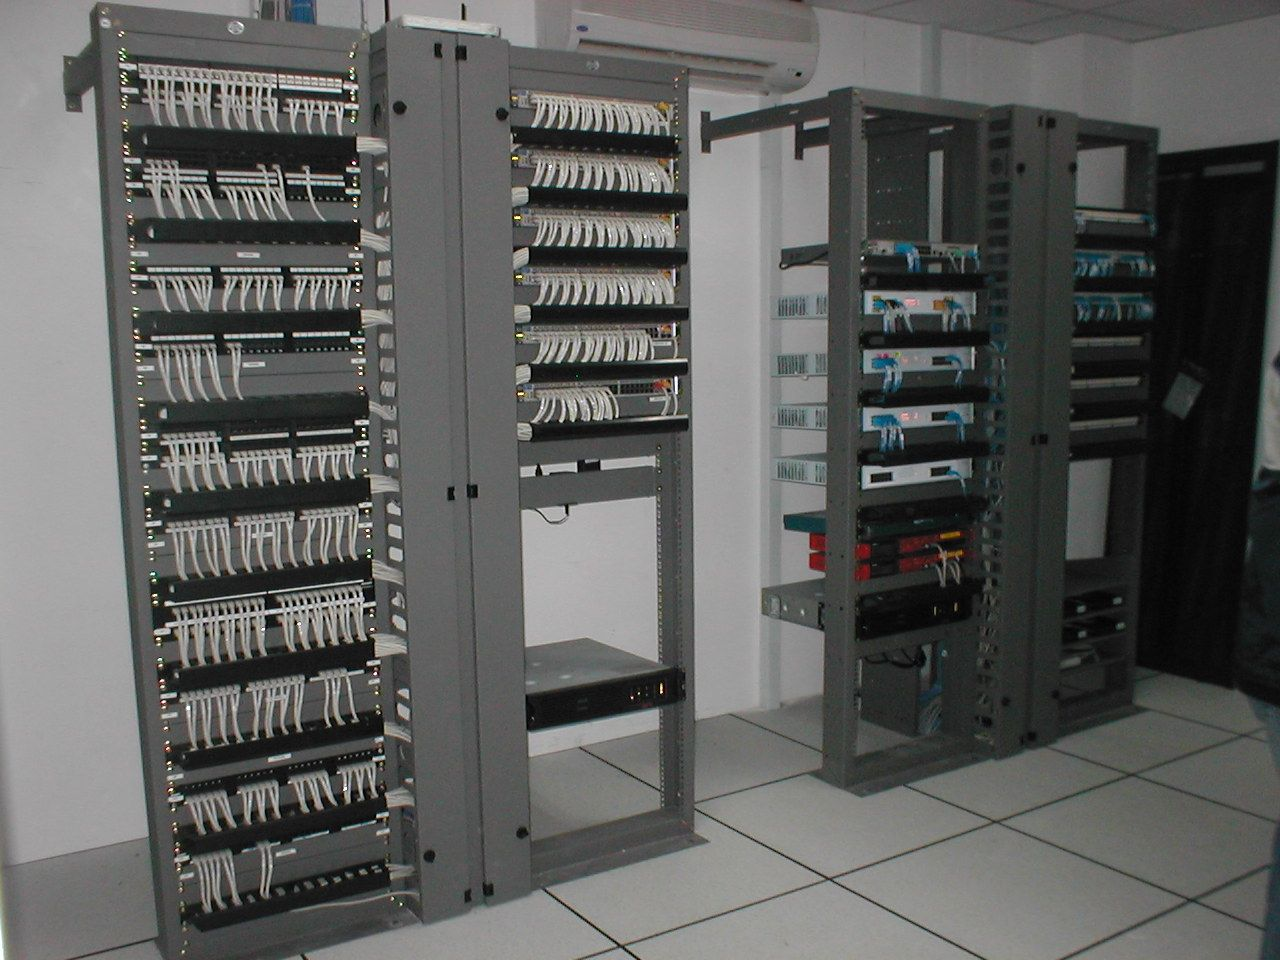 Rack Patch Panel And Switched Separated Rack Layout